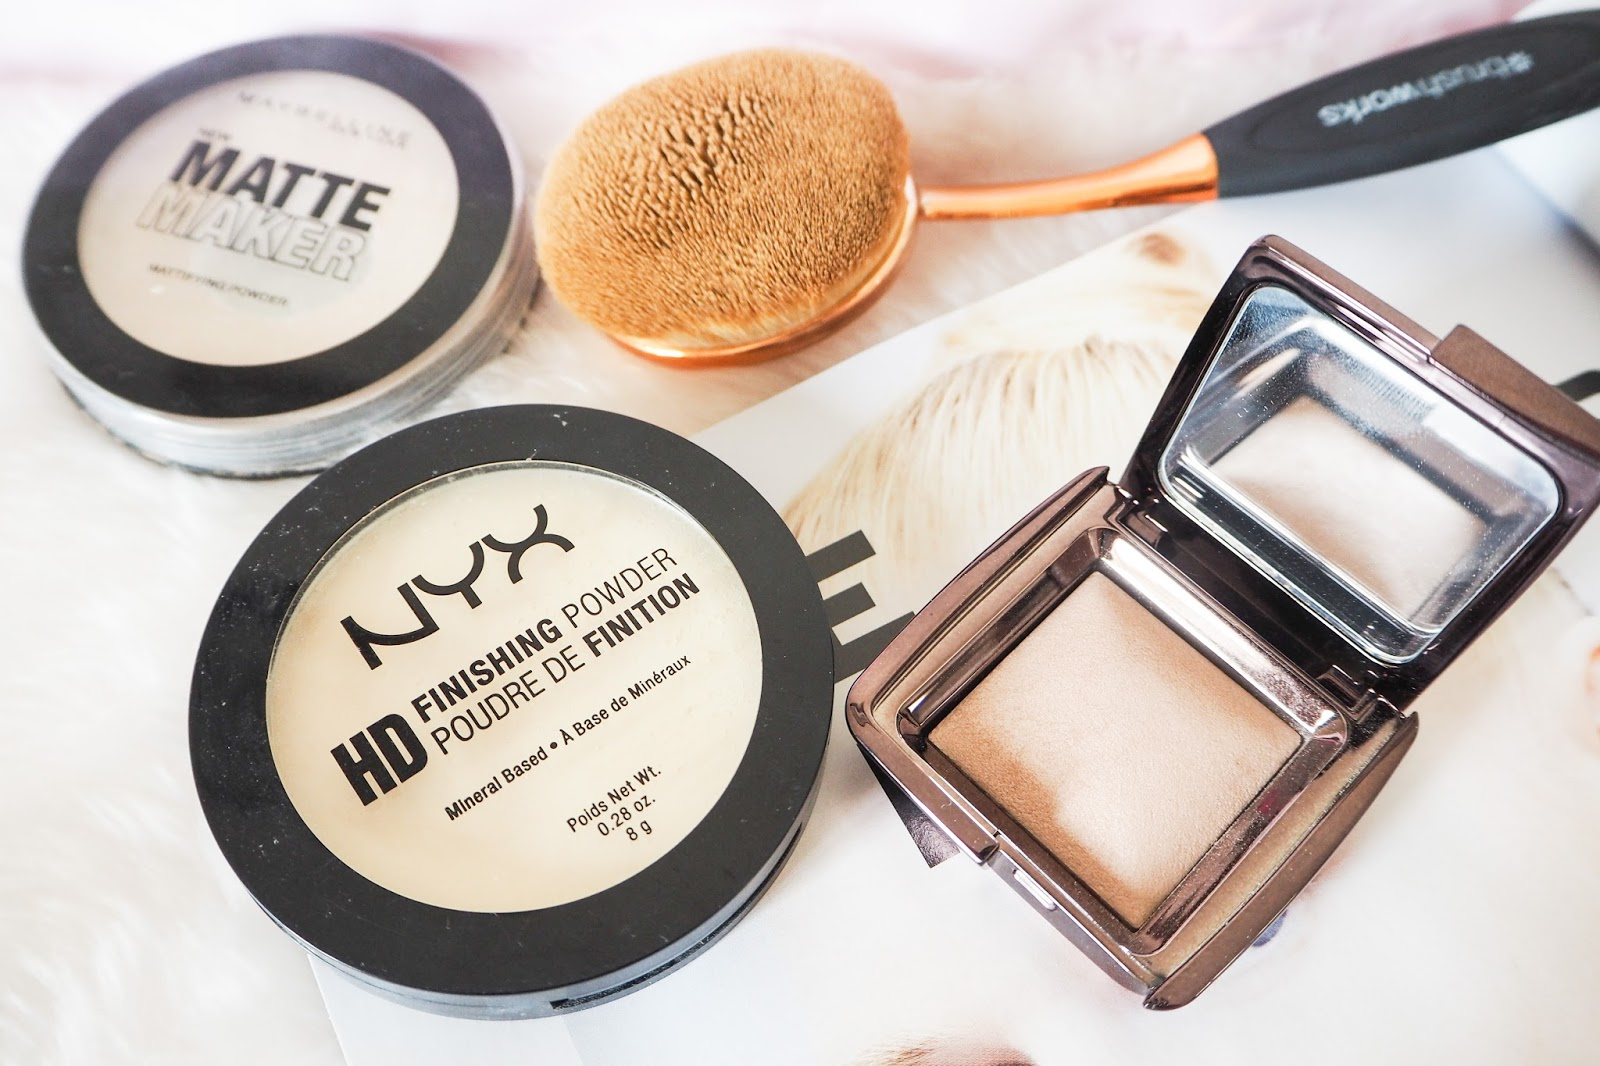 Mini reviews of face powders, including NYX, Hourglass and Maybelline.